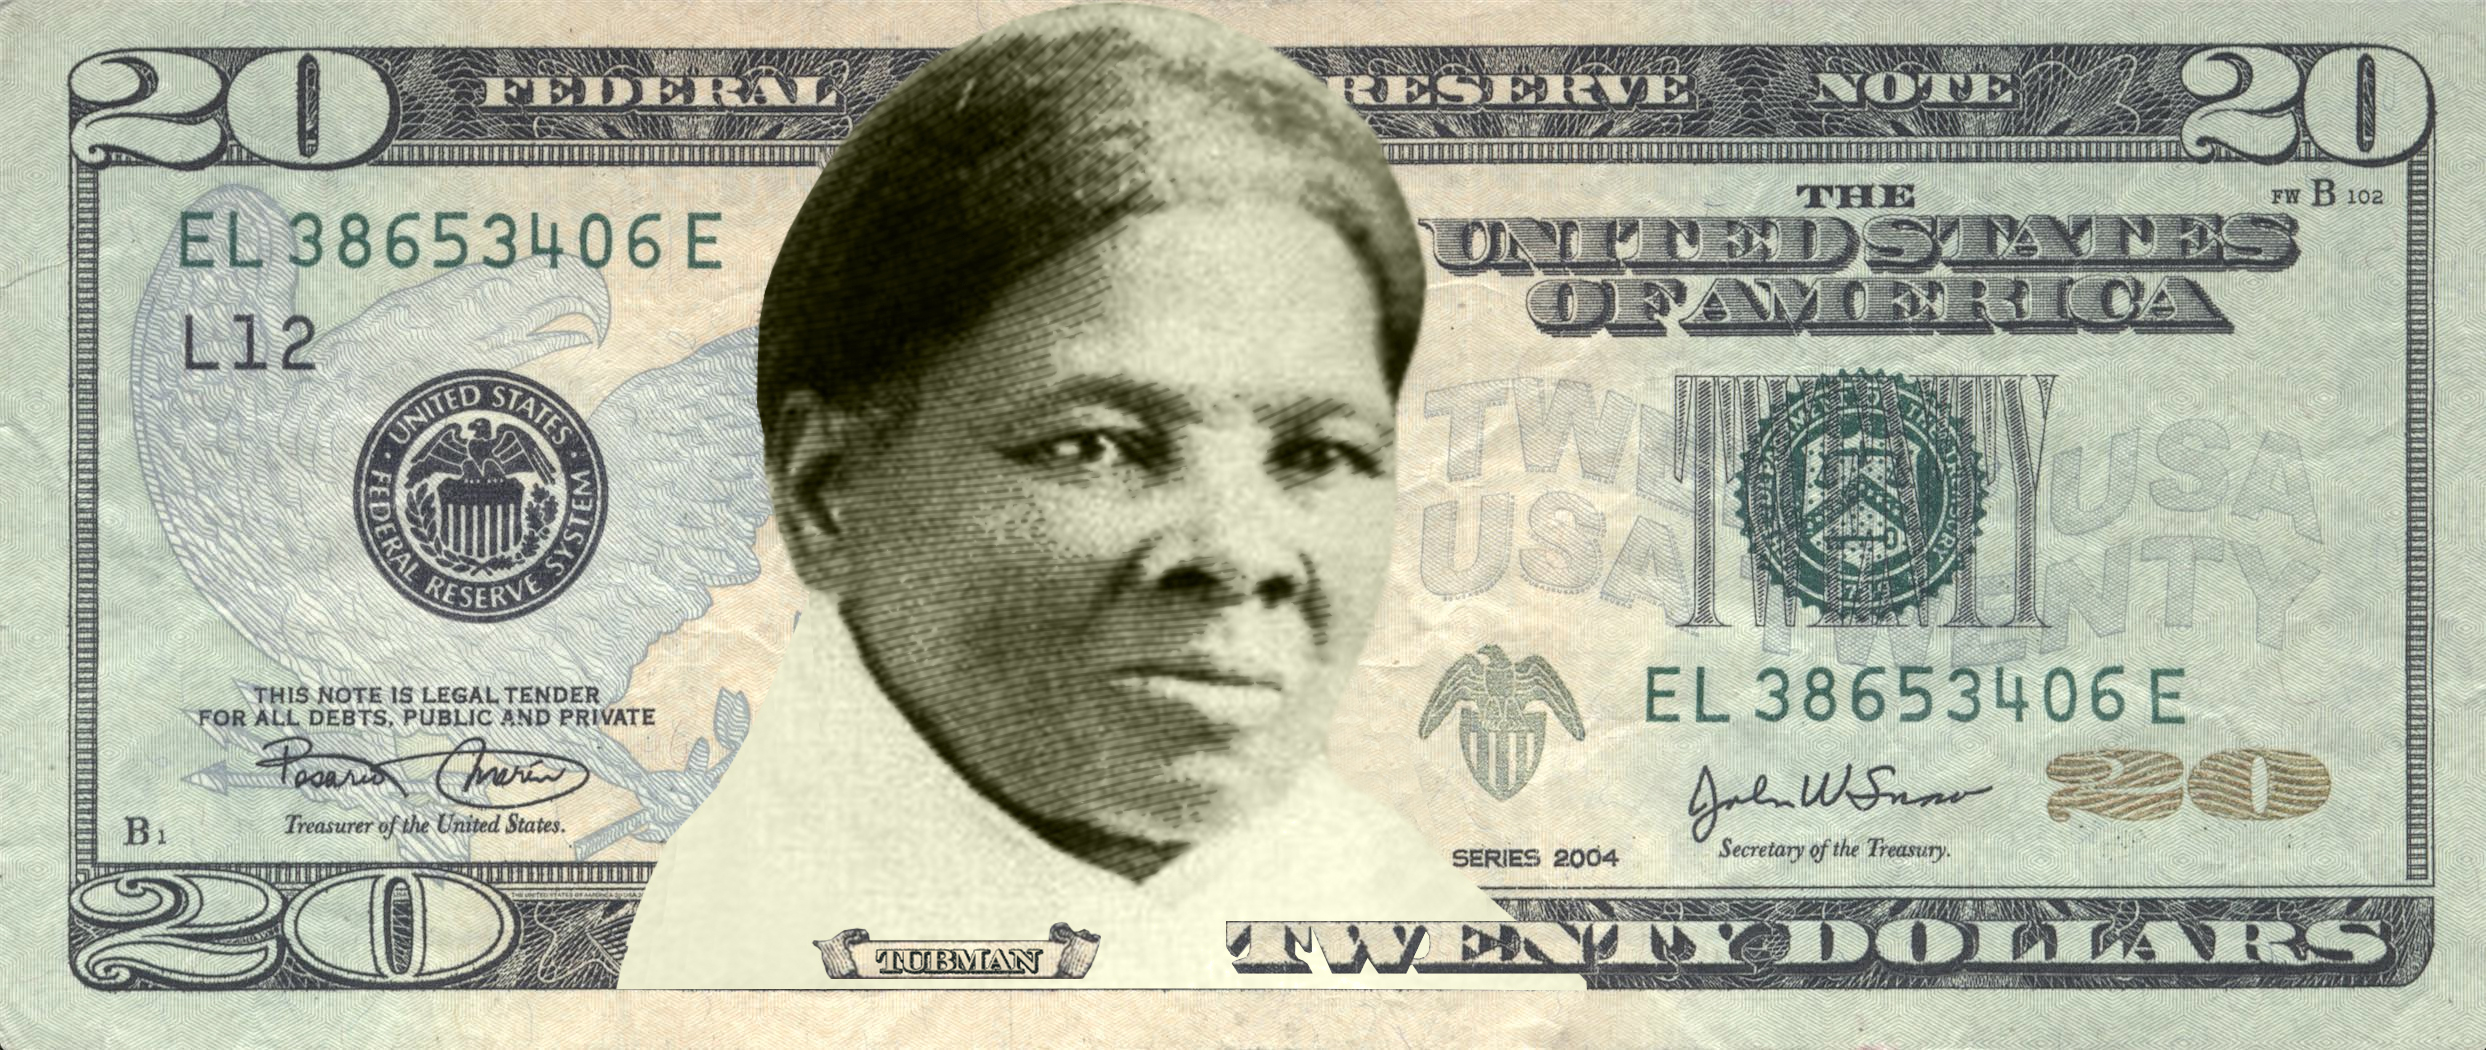 TUBMAN_NEW_20_6.4.15.jpg